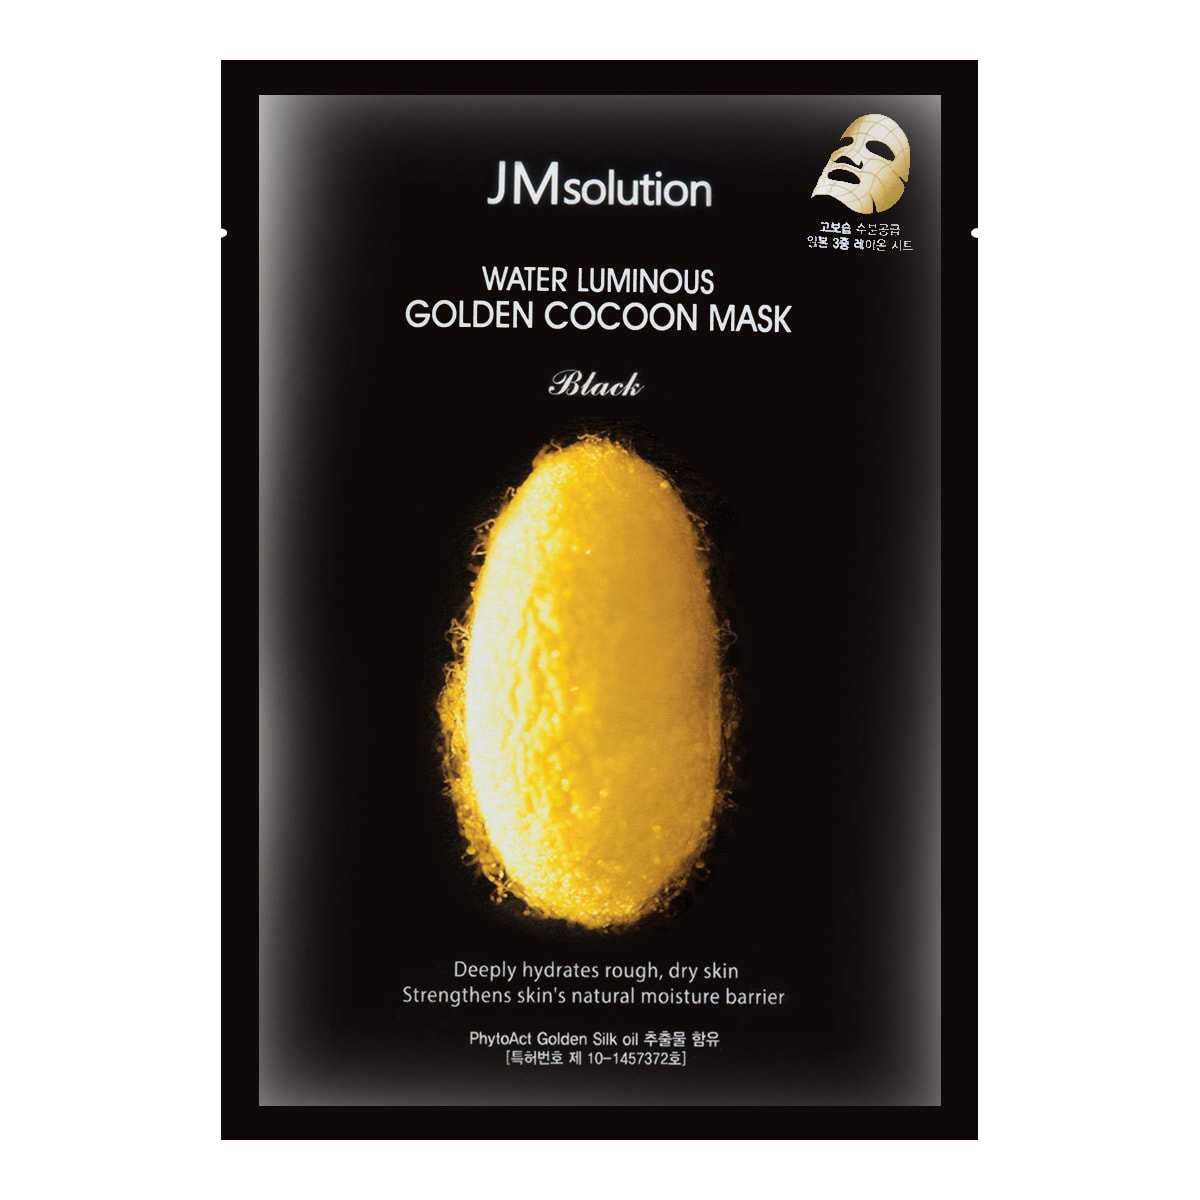 Yamibuy.com:Customer reviews:JM SOLUTION Water Luminous Golden Cocoon Mask Black 1sheet